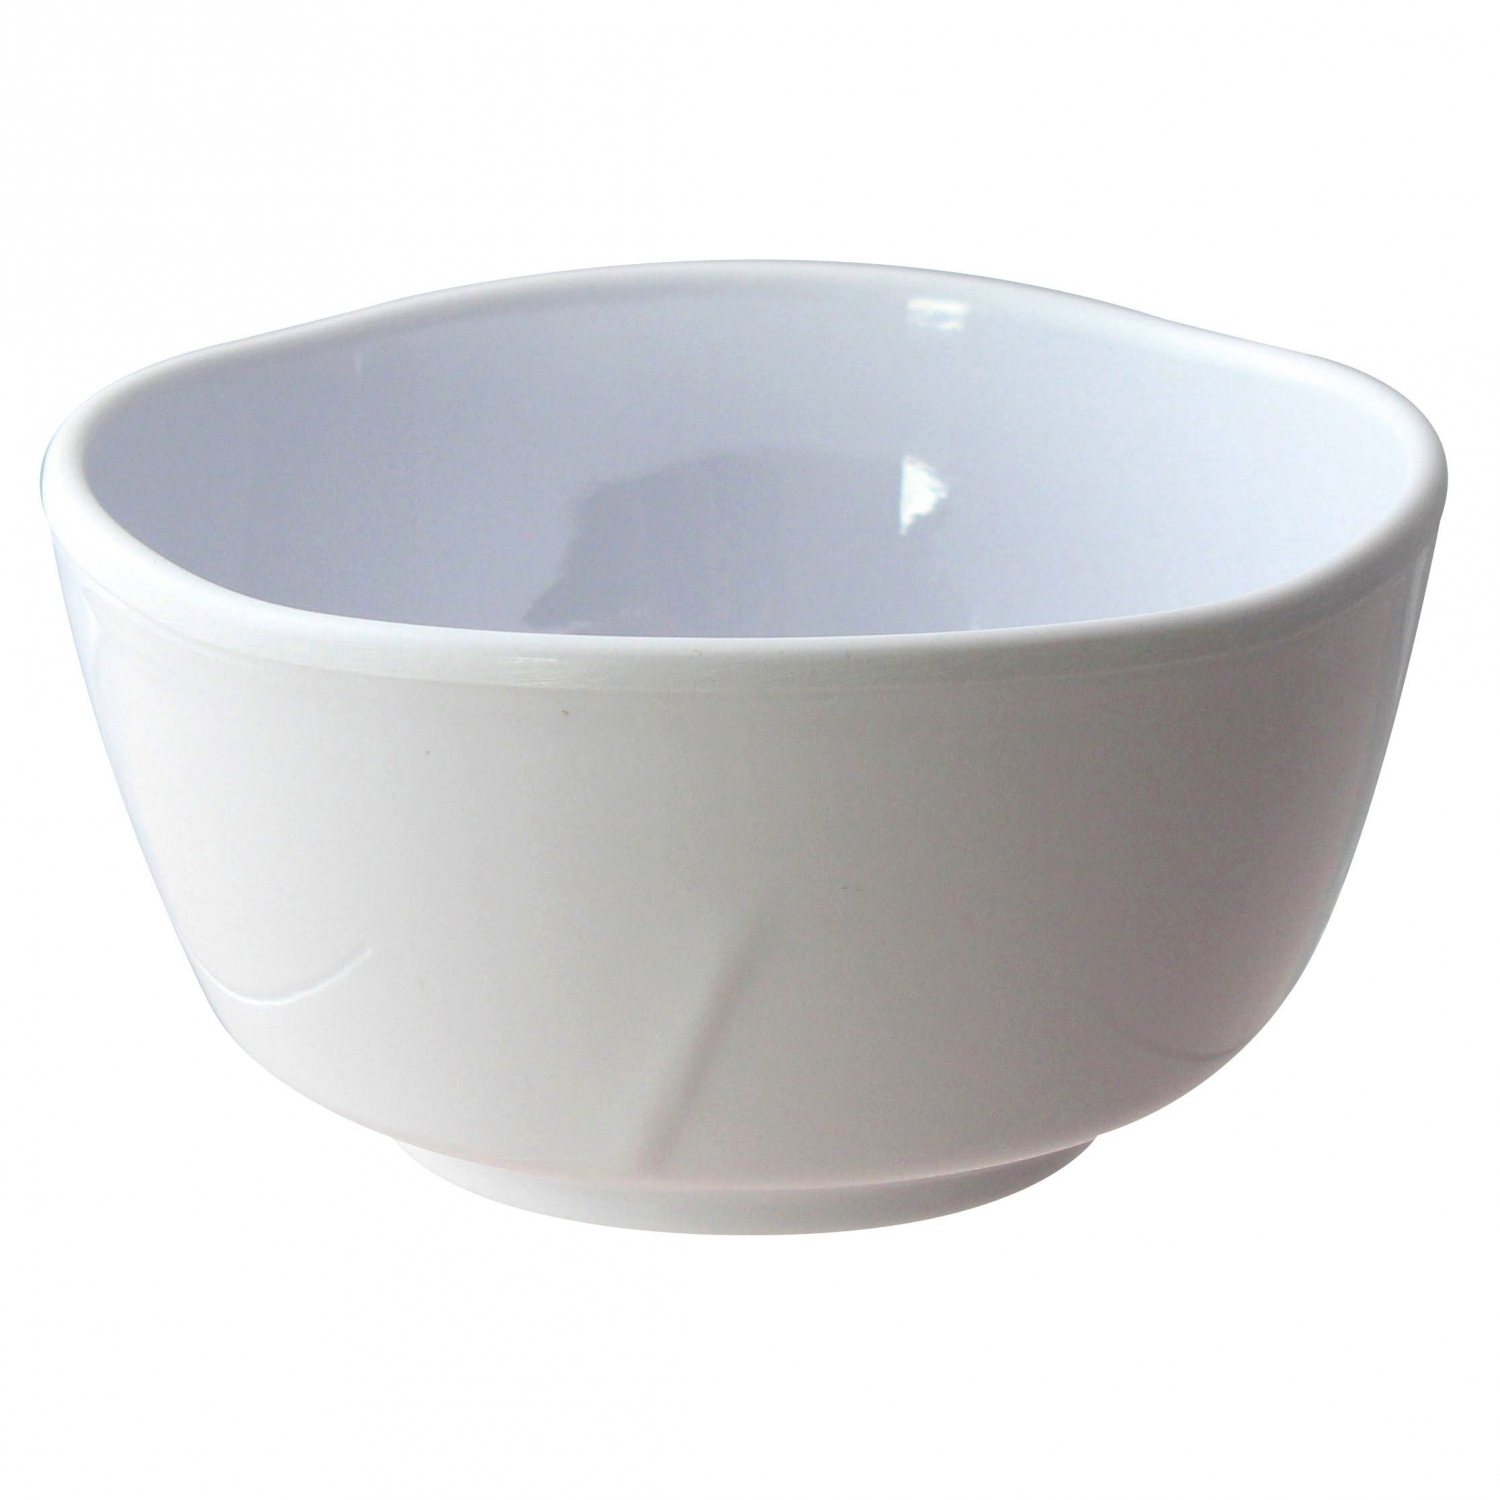 Thunder Group 39050WT Round Classic White Series Bowl 16 oz. - 1 doz